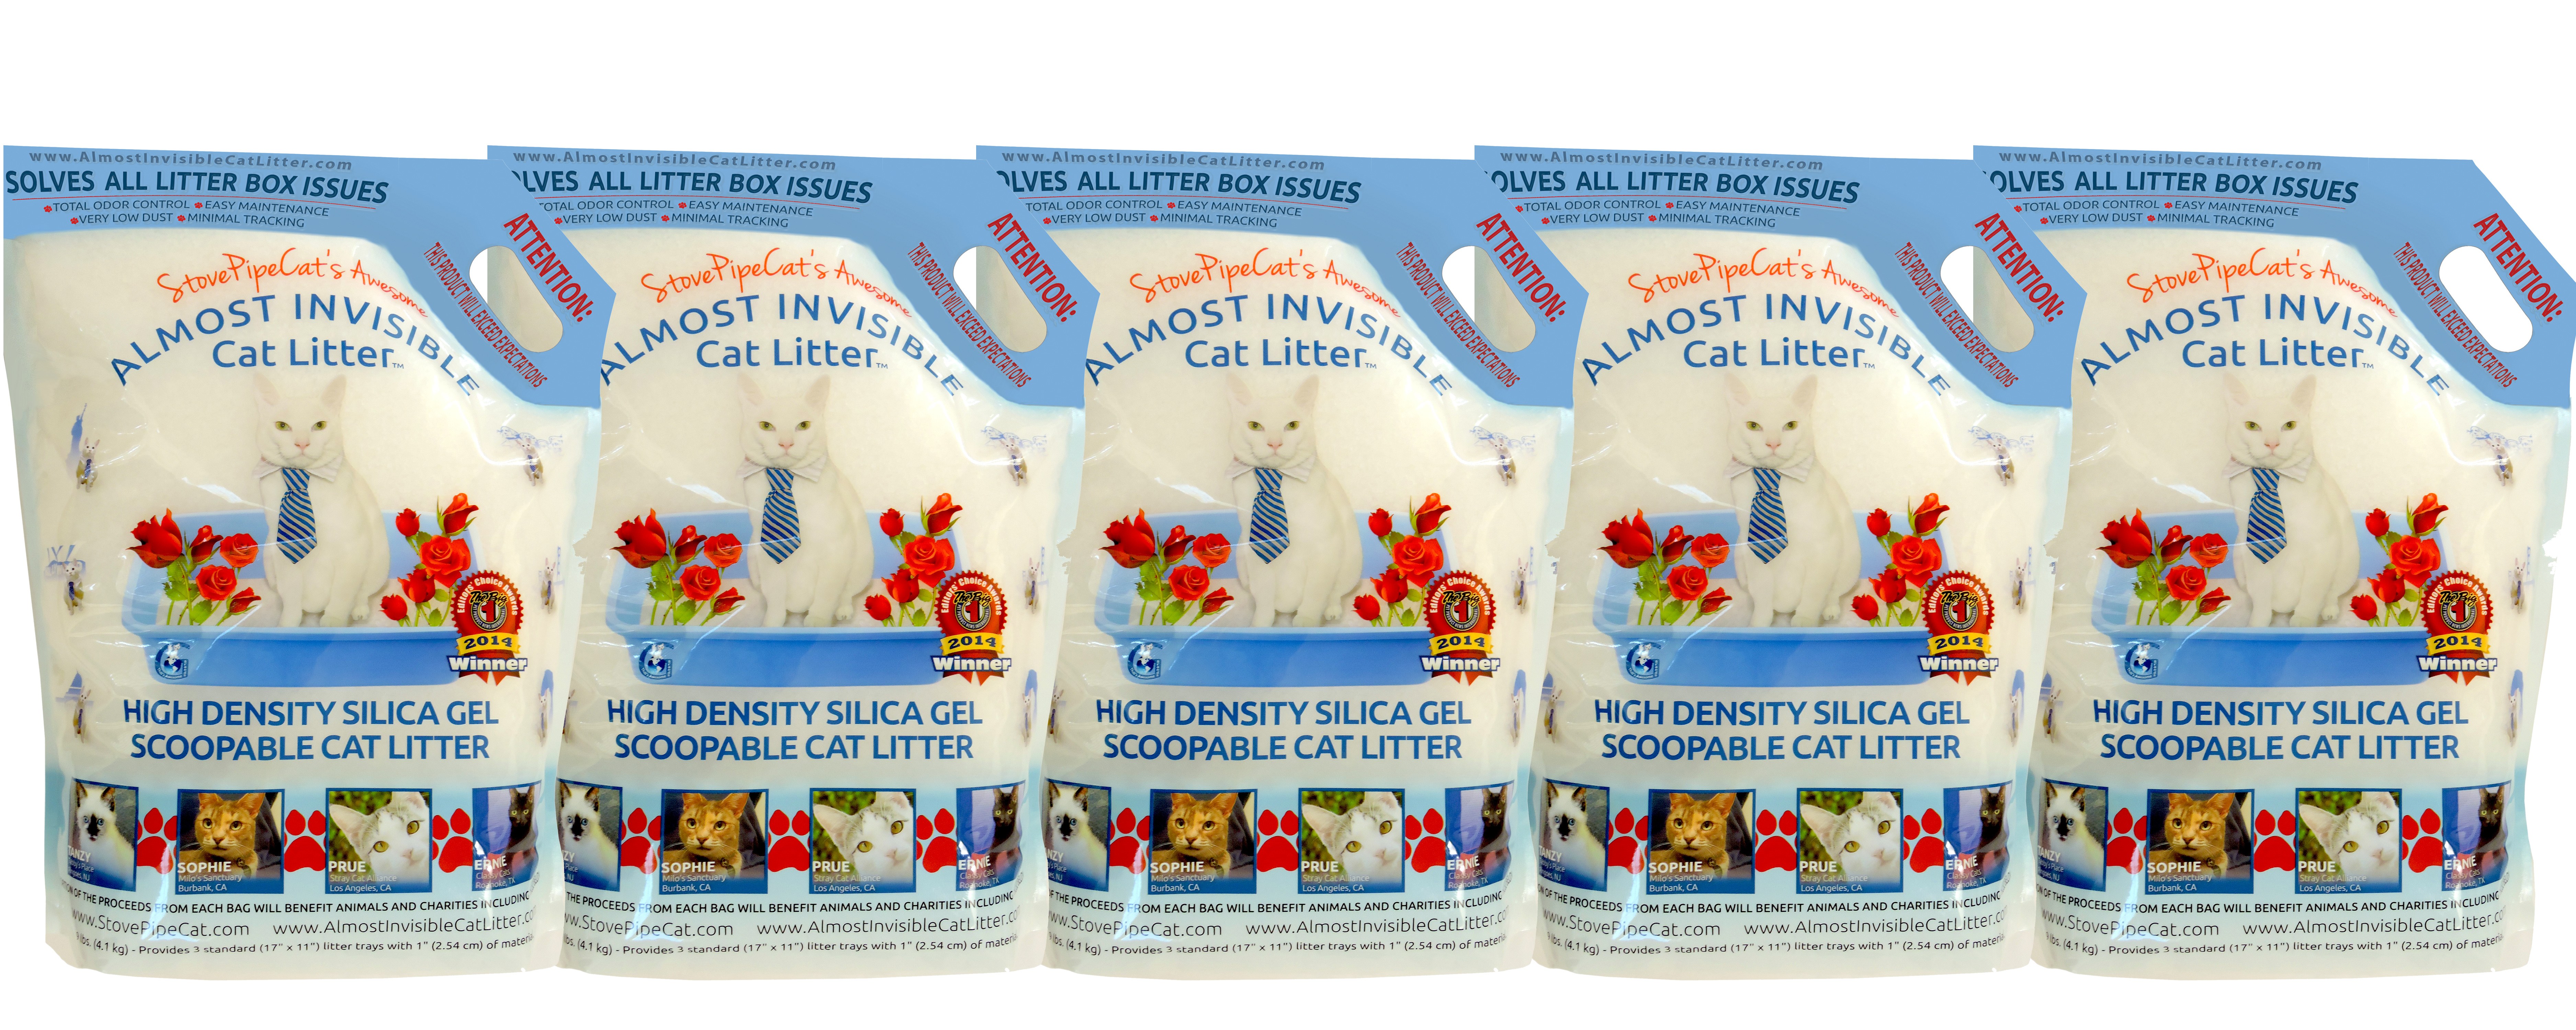 almost-invisible-cat-litter-5-bags2.jpg